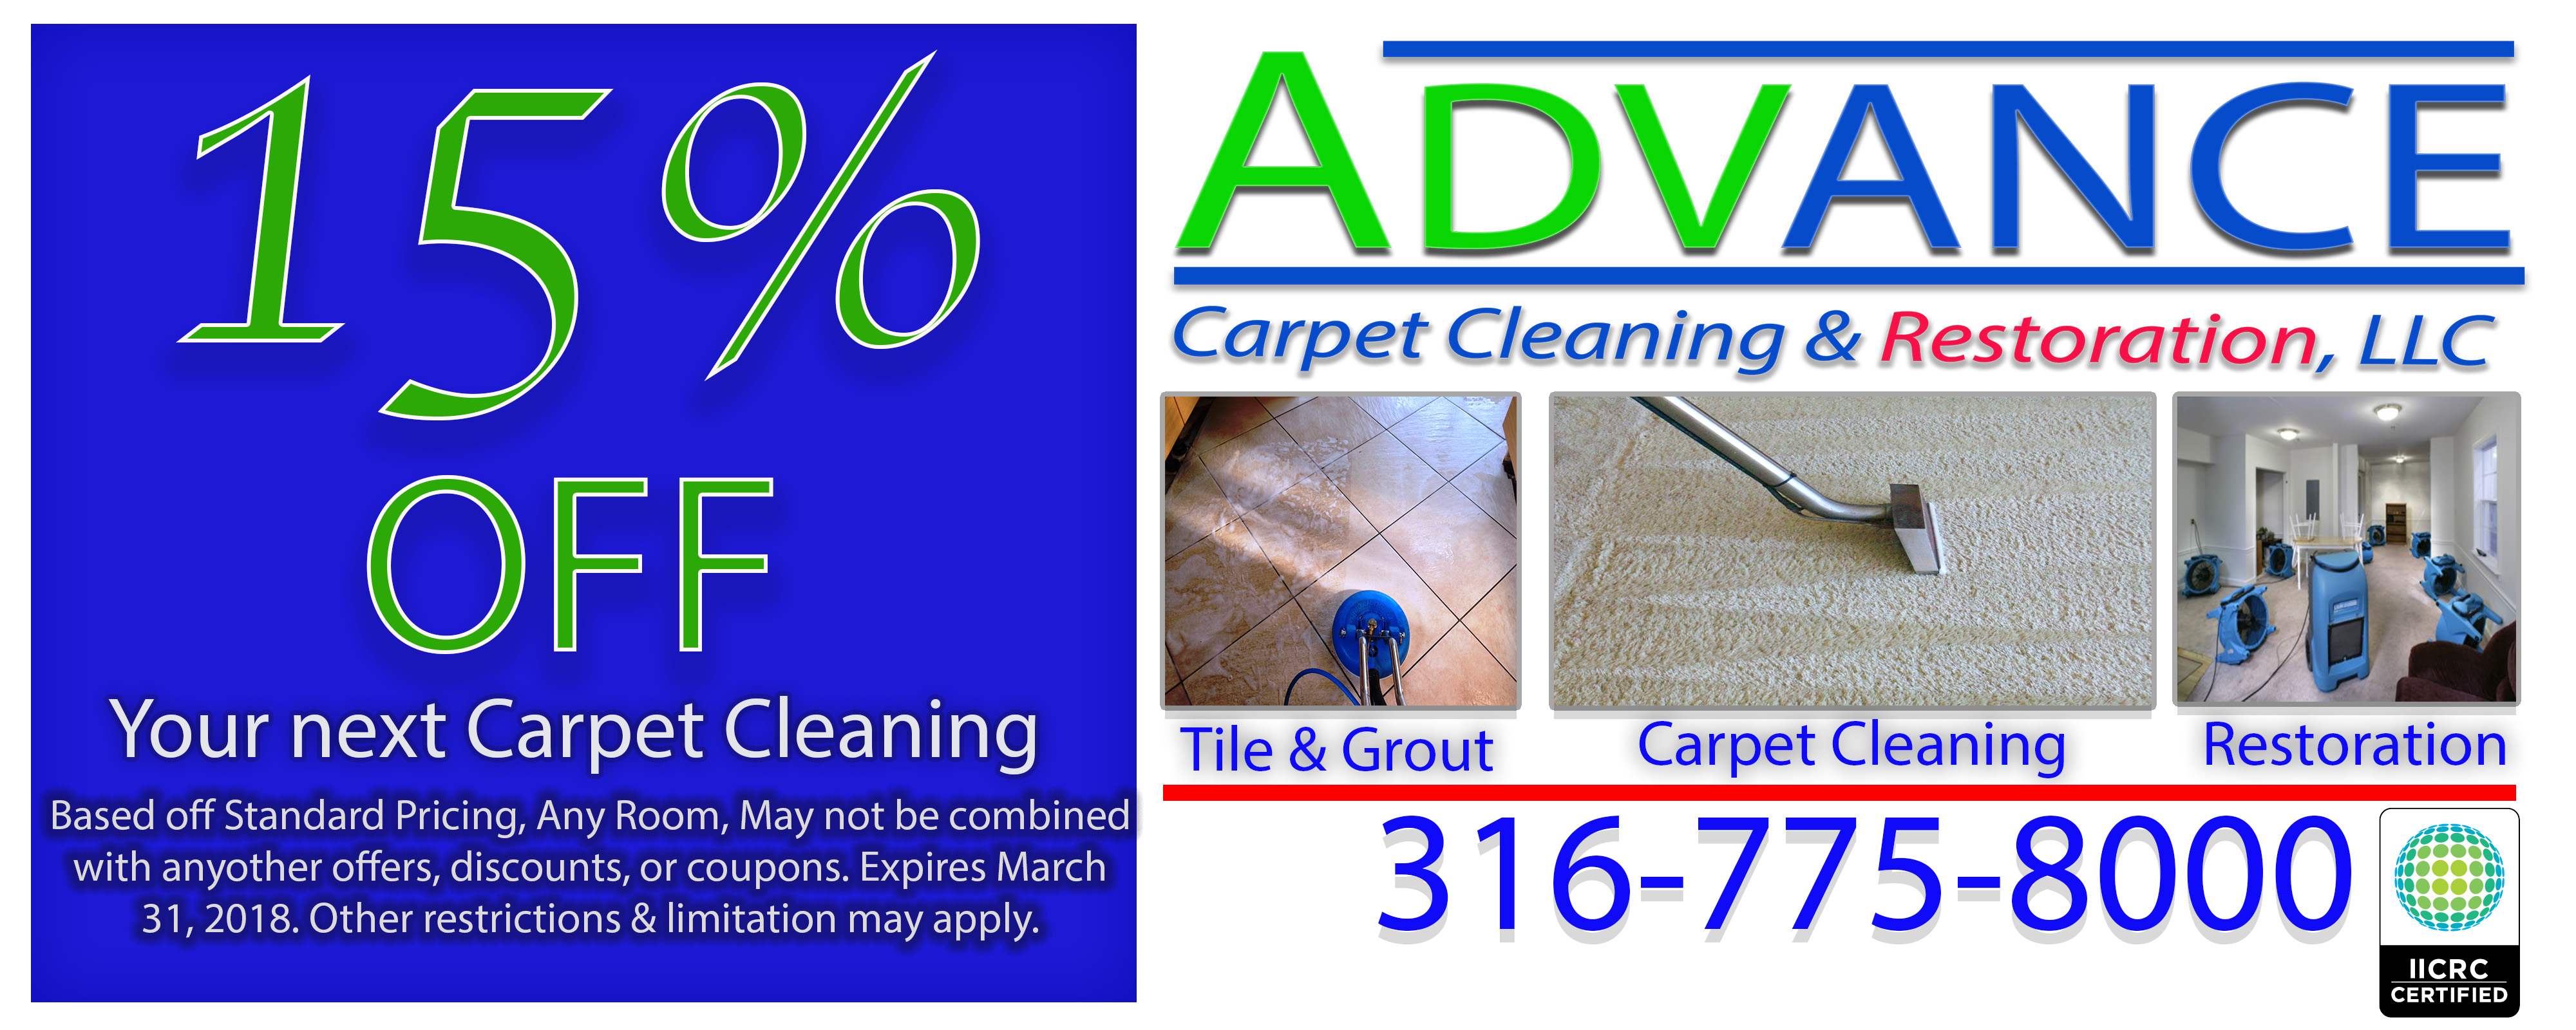 Carpet Cleaning – Advance Carpet Cleaning & Restoration